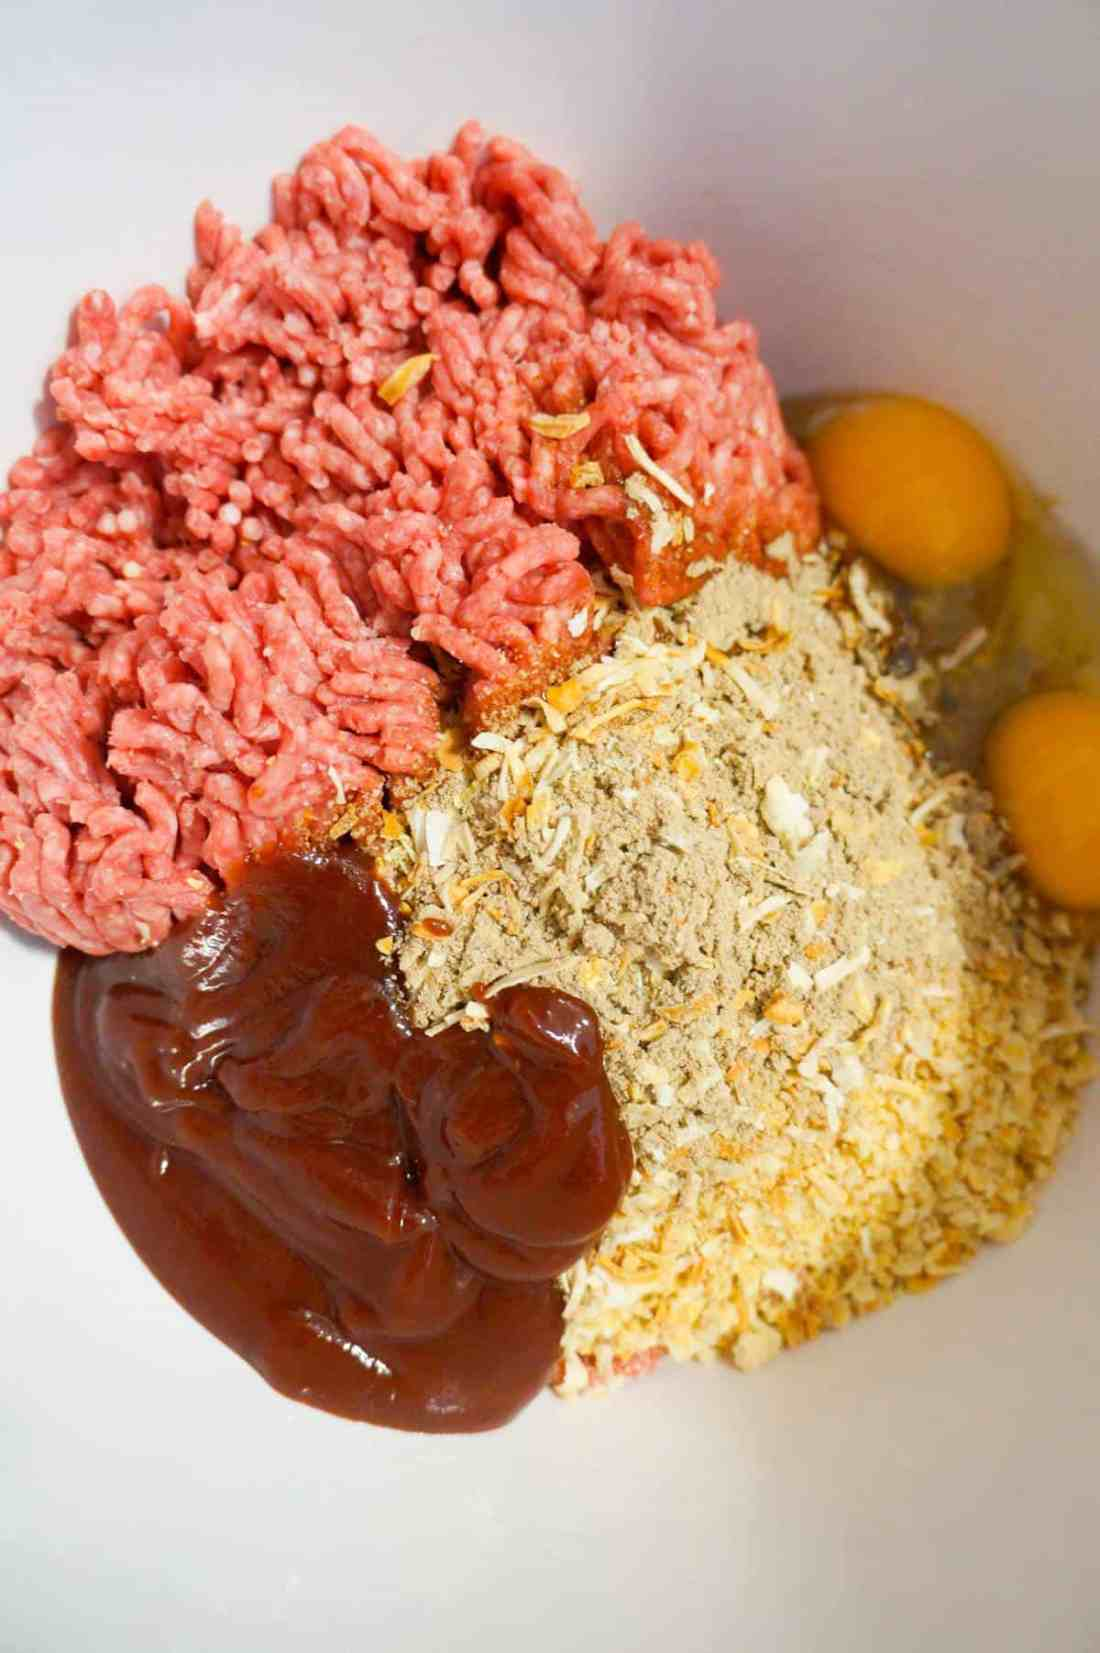 raw ground beef, Ritz cracker crumbs, bbq sauce and eggs in a mixing bowl